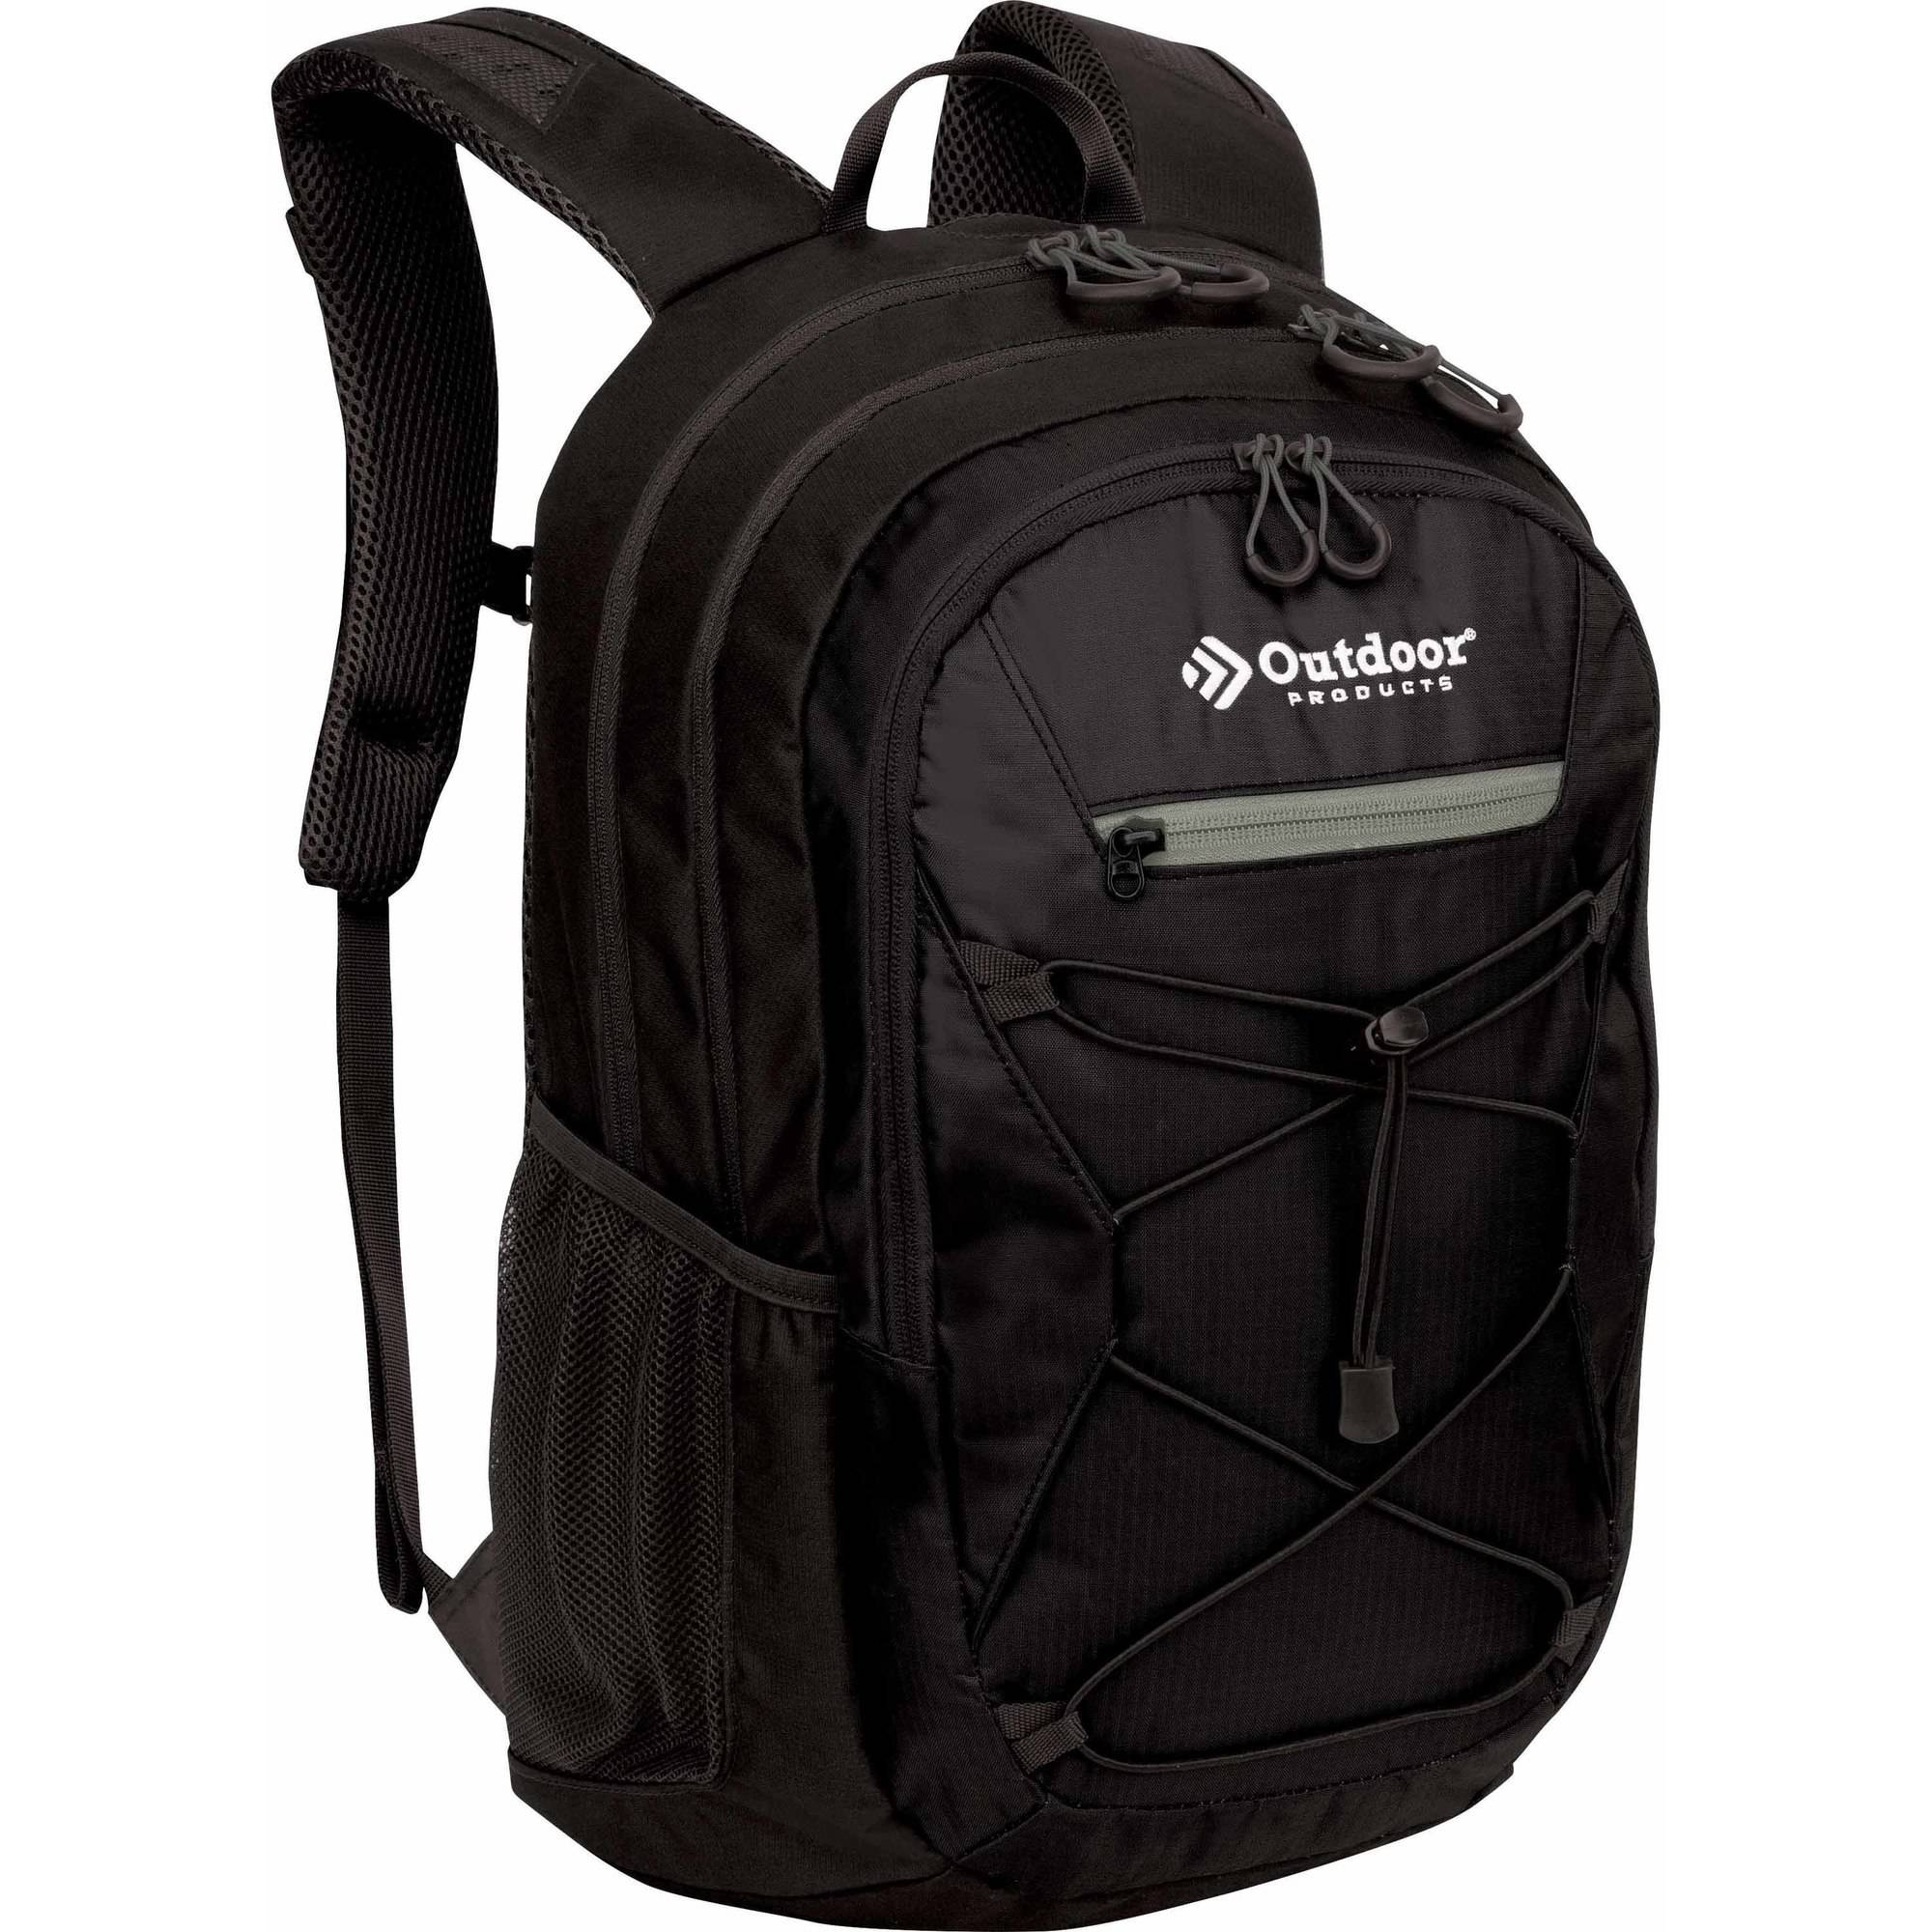 Outdoor Products Odyssey Backpack Daypack, Black